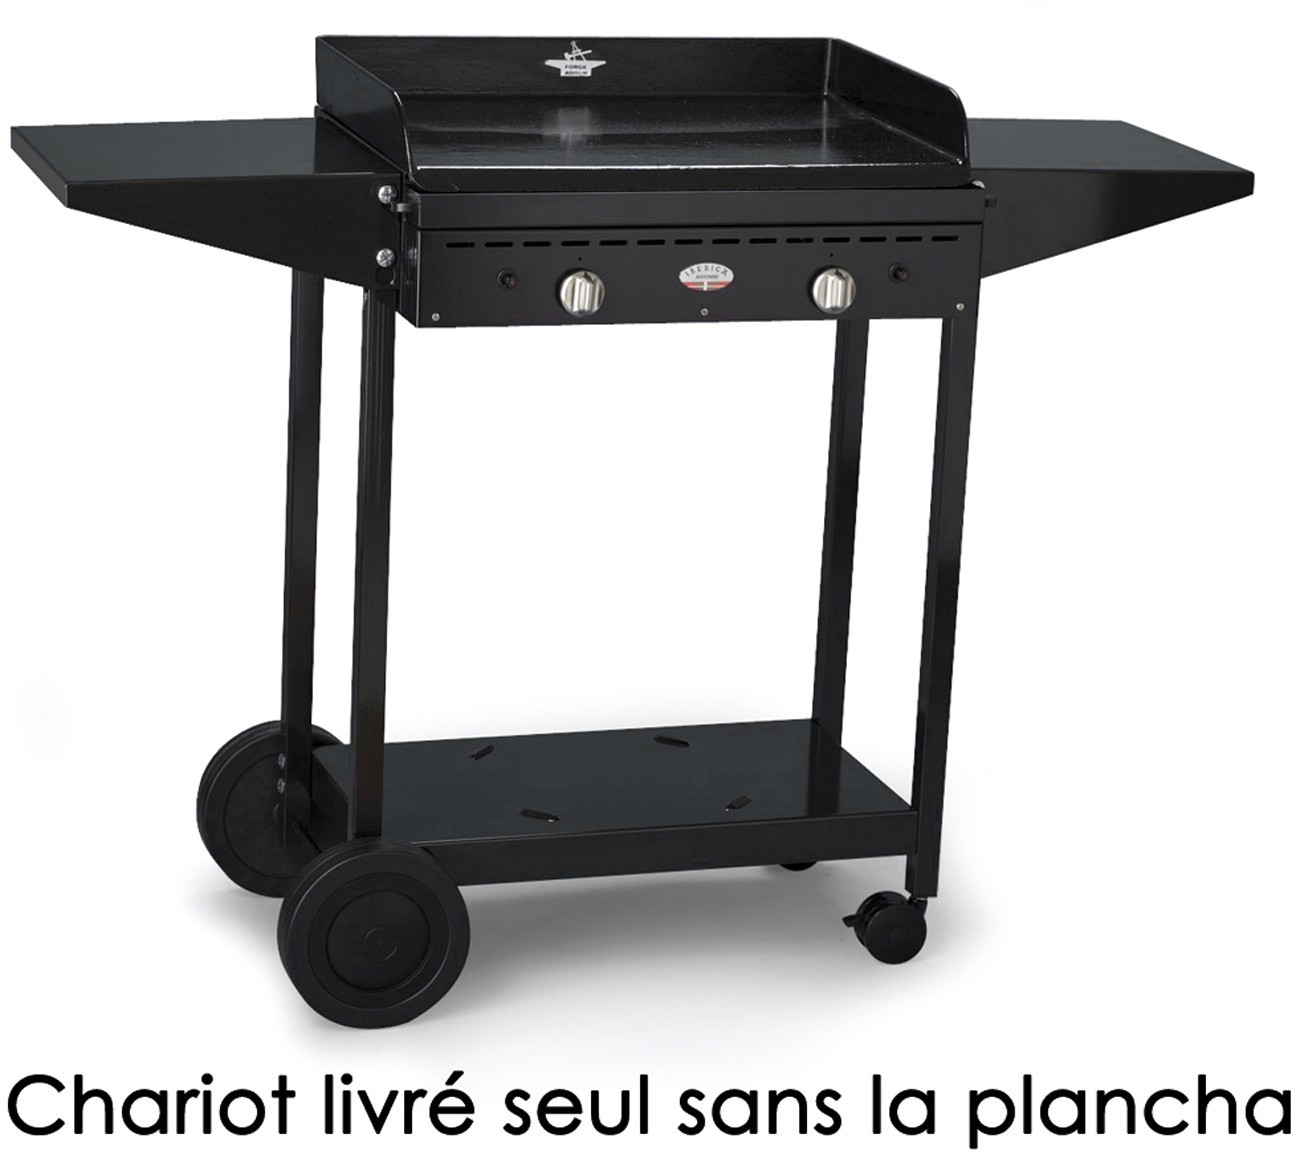 FORGE ADOUR - CHI F 600